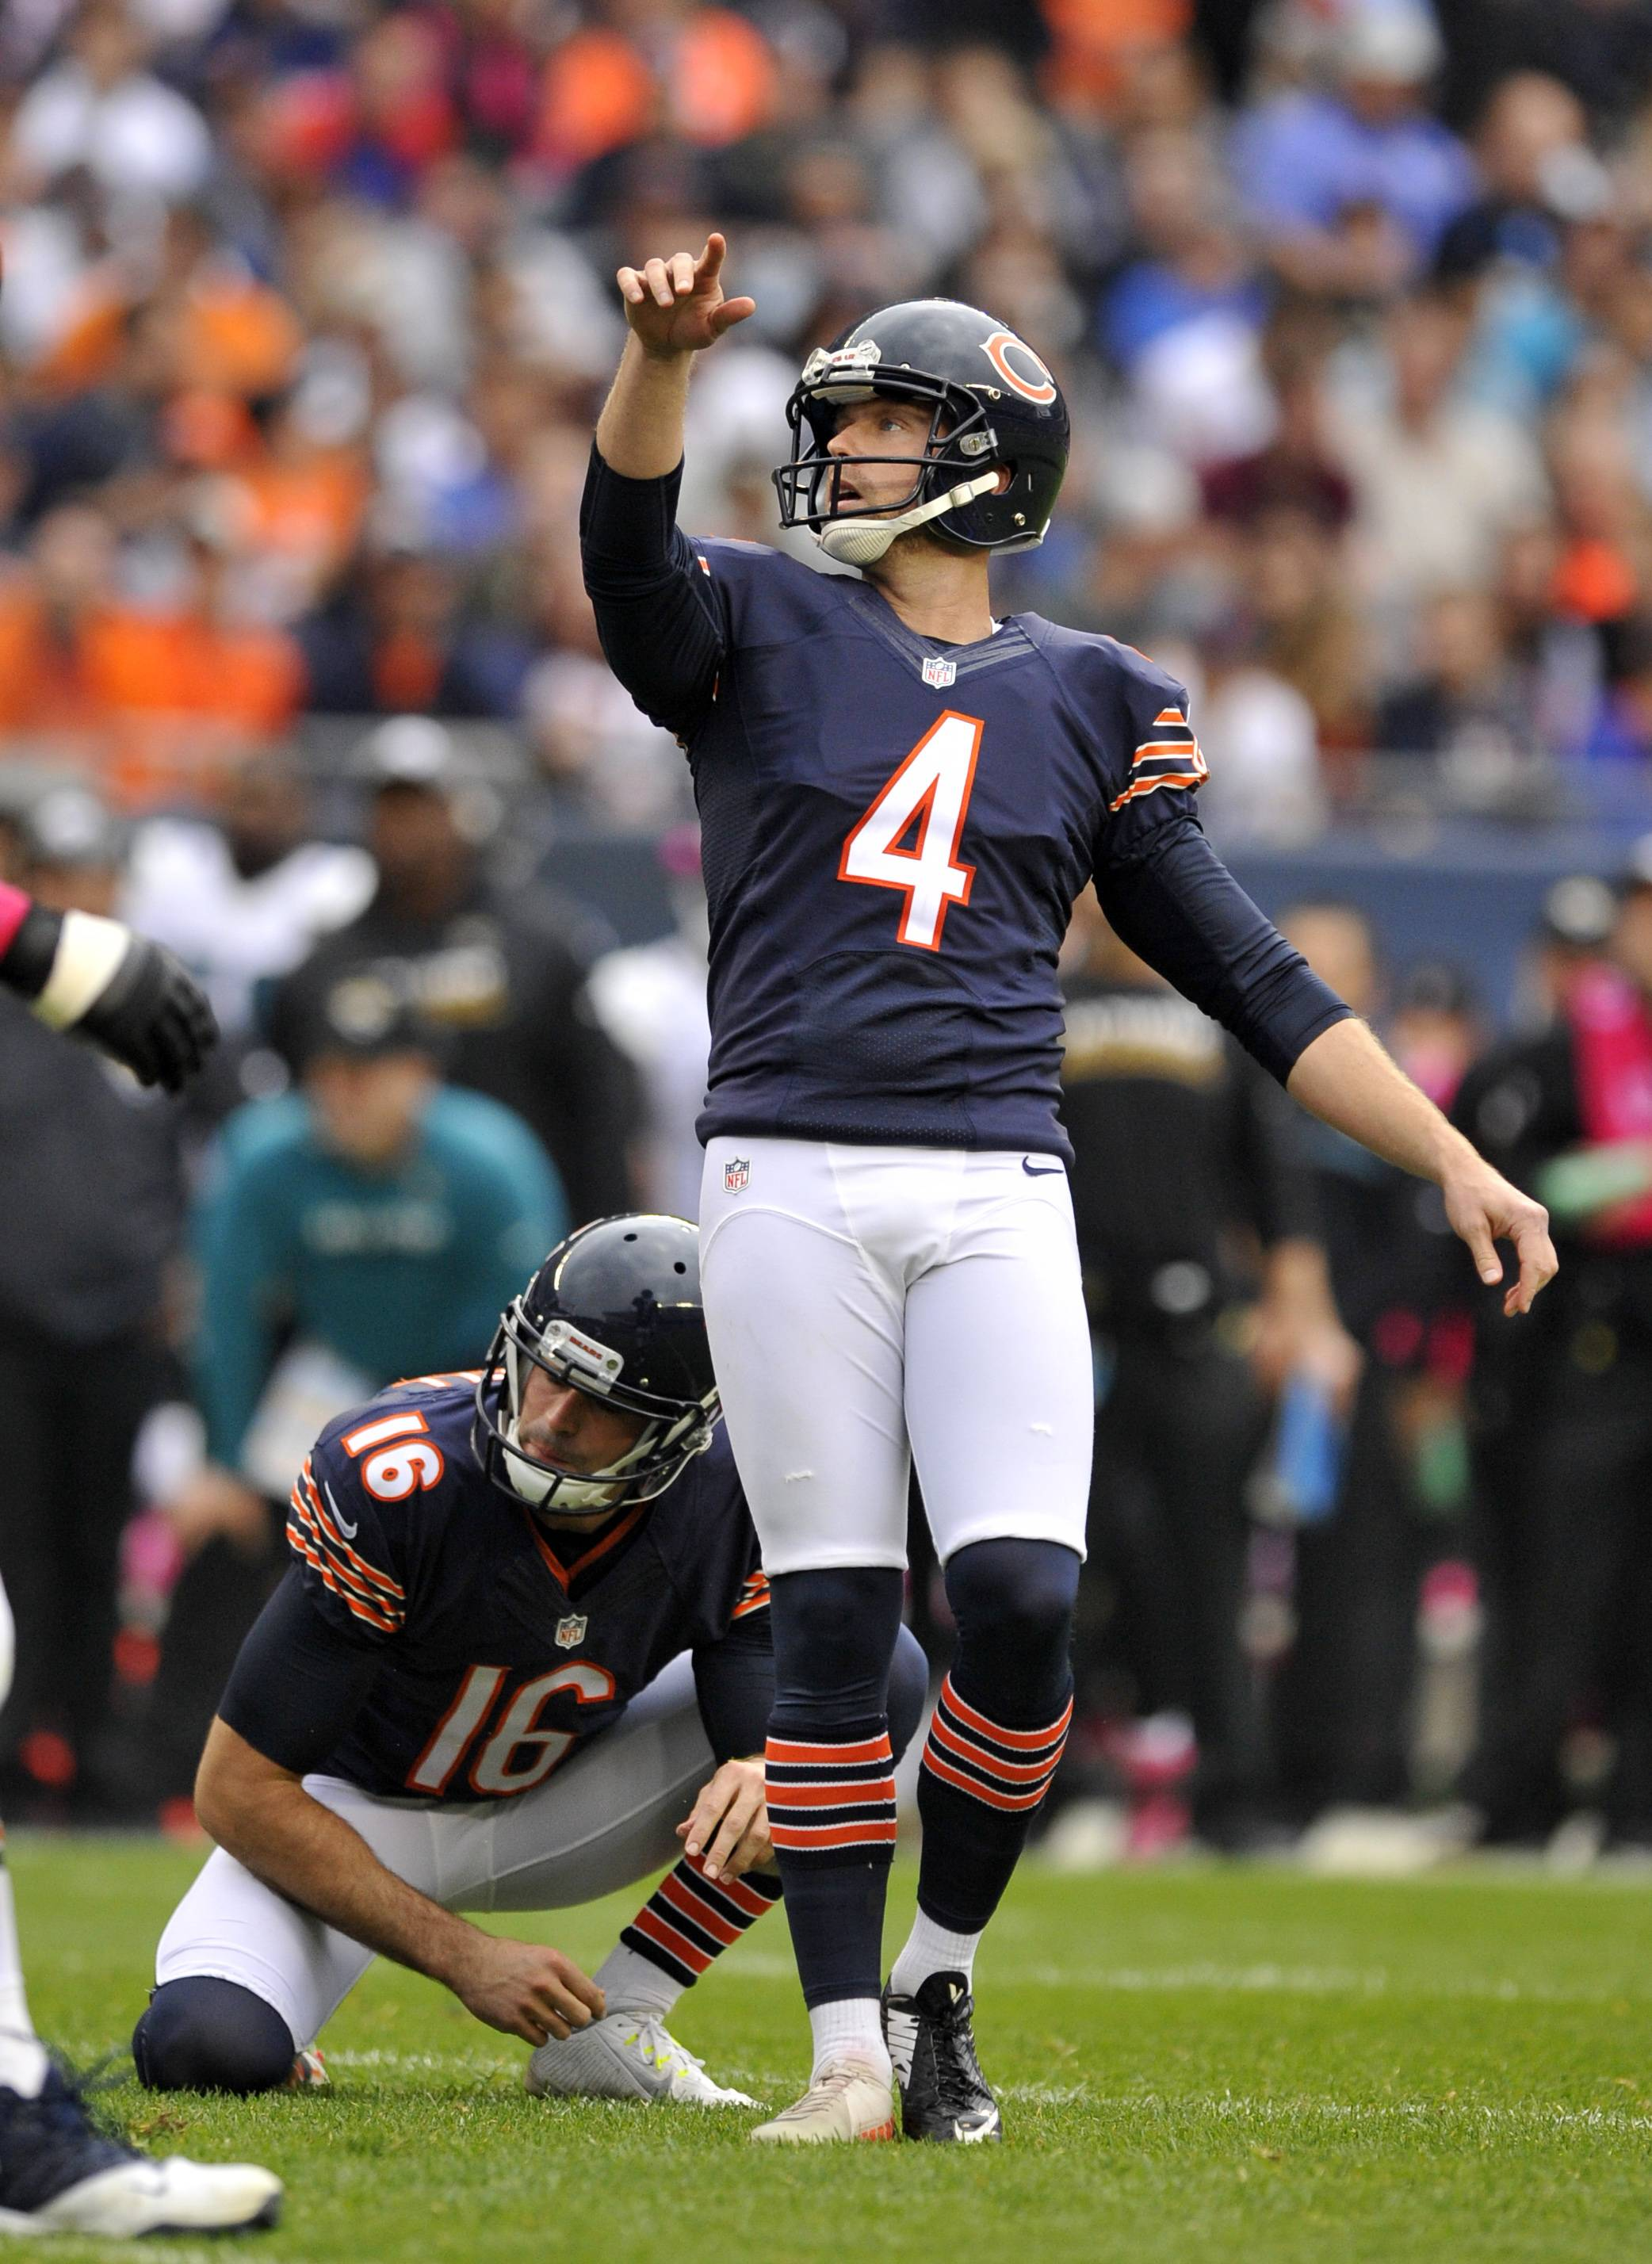 Chicago Bears kicker Connor Barth (4) watches as his field goal goes through the uprights during the second half of an NFL football game against the Jacksonville Jaguars in Chicago, Sunday, Oct. 16, 2016. (AP Photo/Paul Beaty)